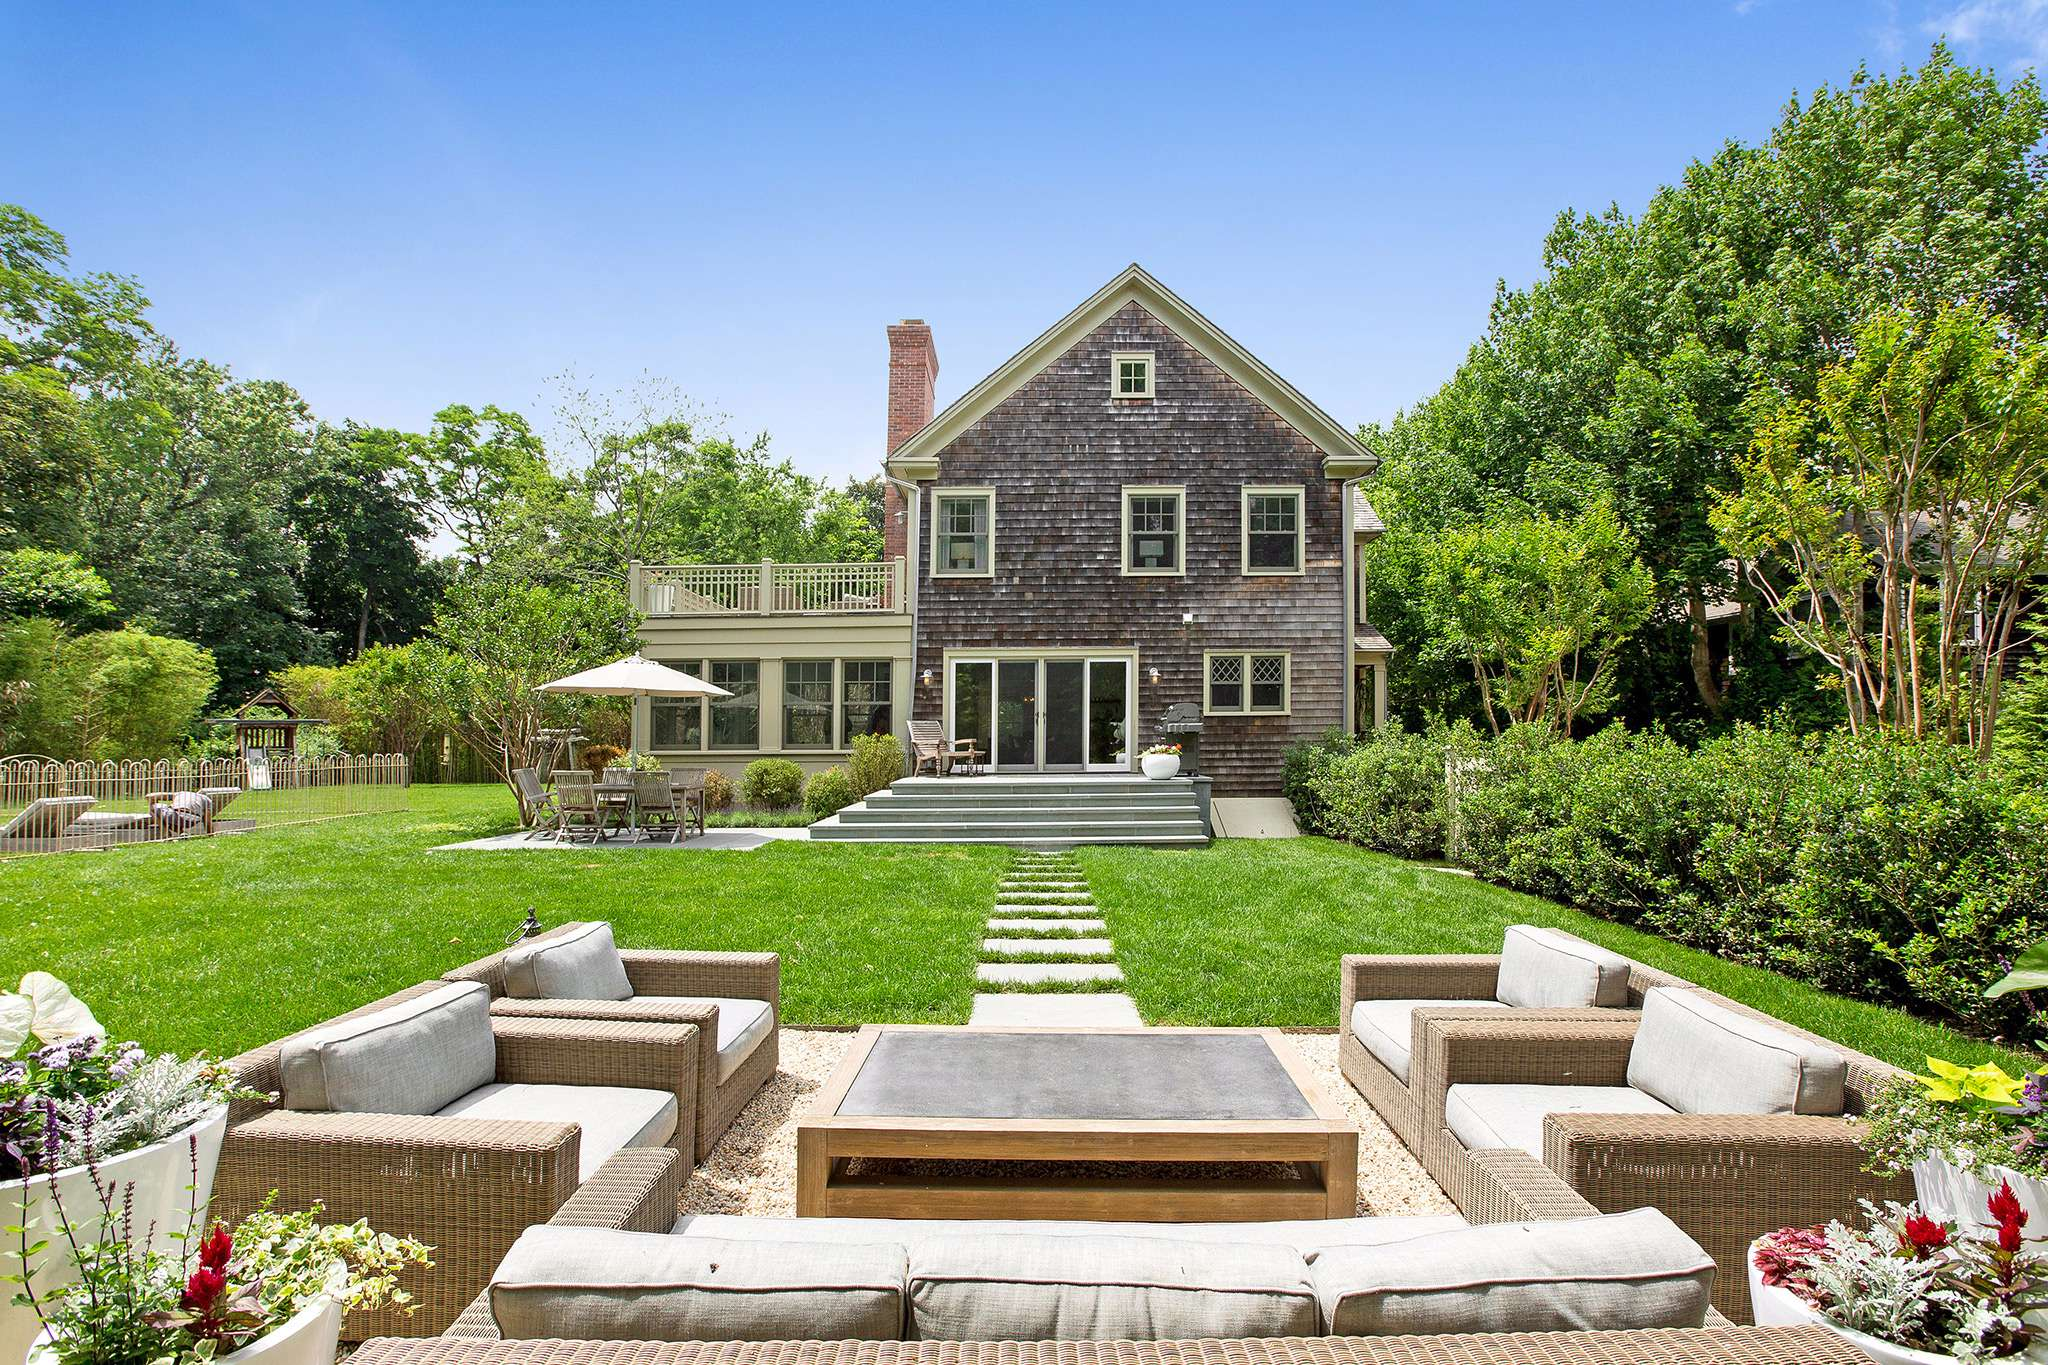 Single Family Home for Sale at A Sag Harbor Home For All Seasons. Sag Harbor, New York